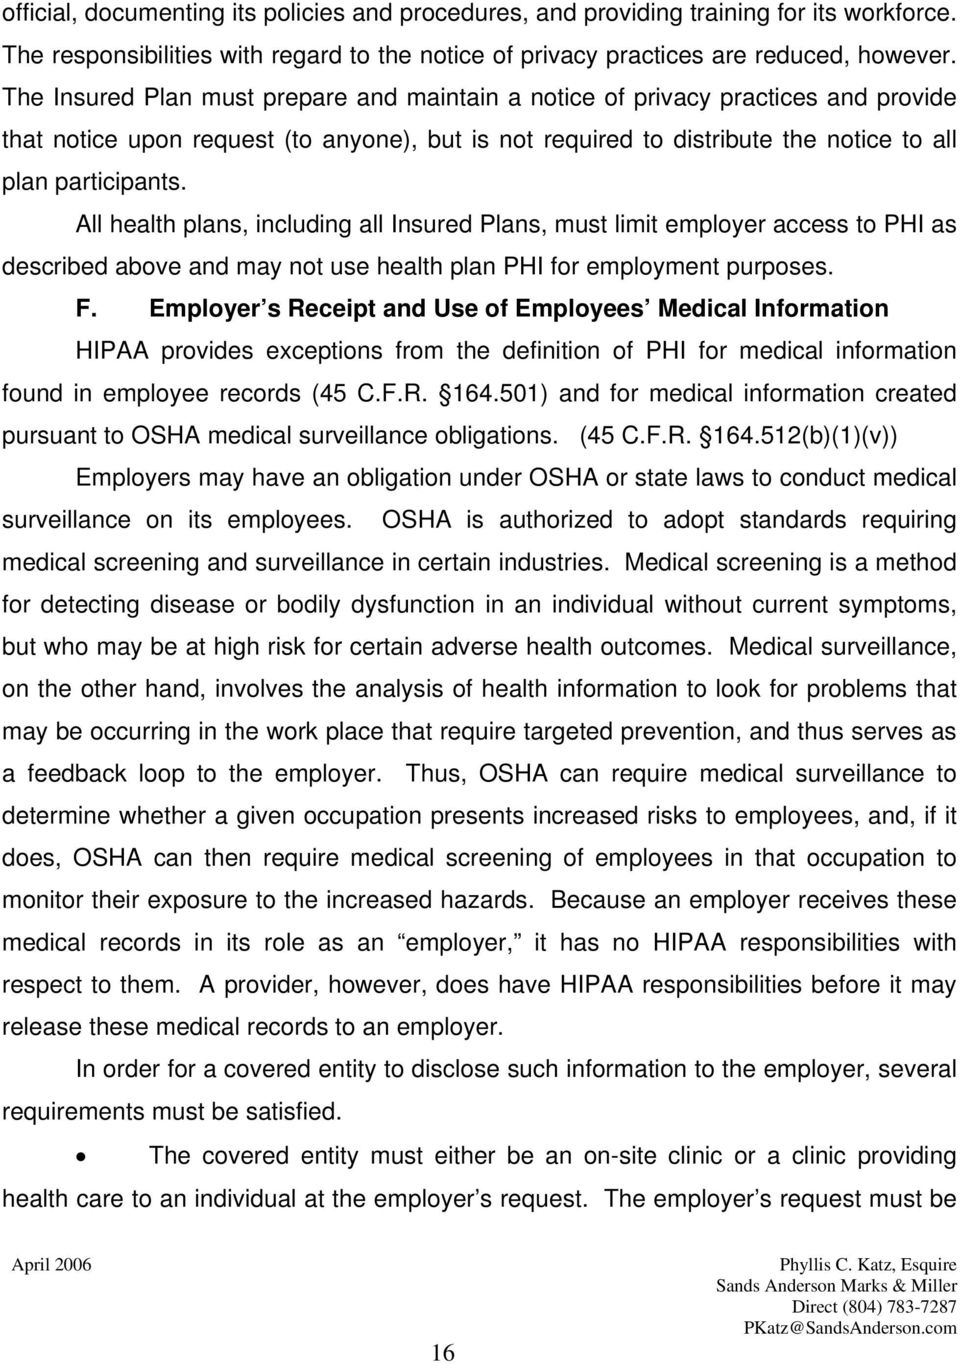 All health plans, including all Insured Plans, must limit employer access to PHI as described above and may not use health plan PHI for employment purposes. F.